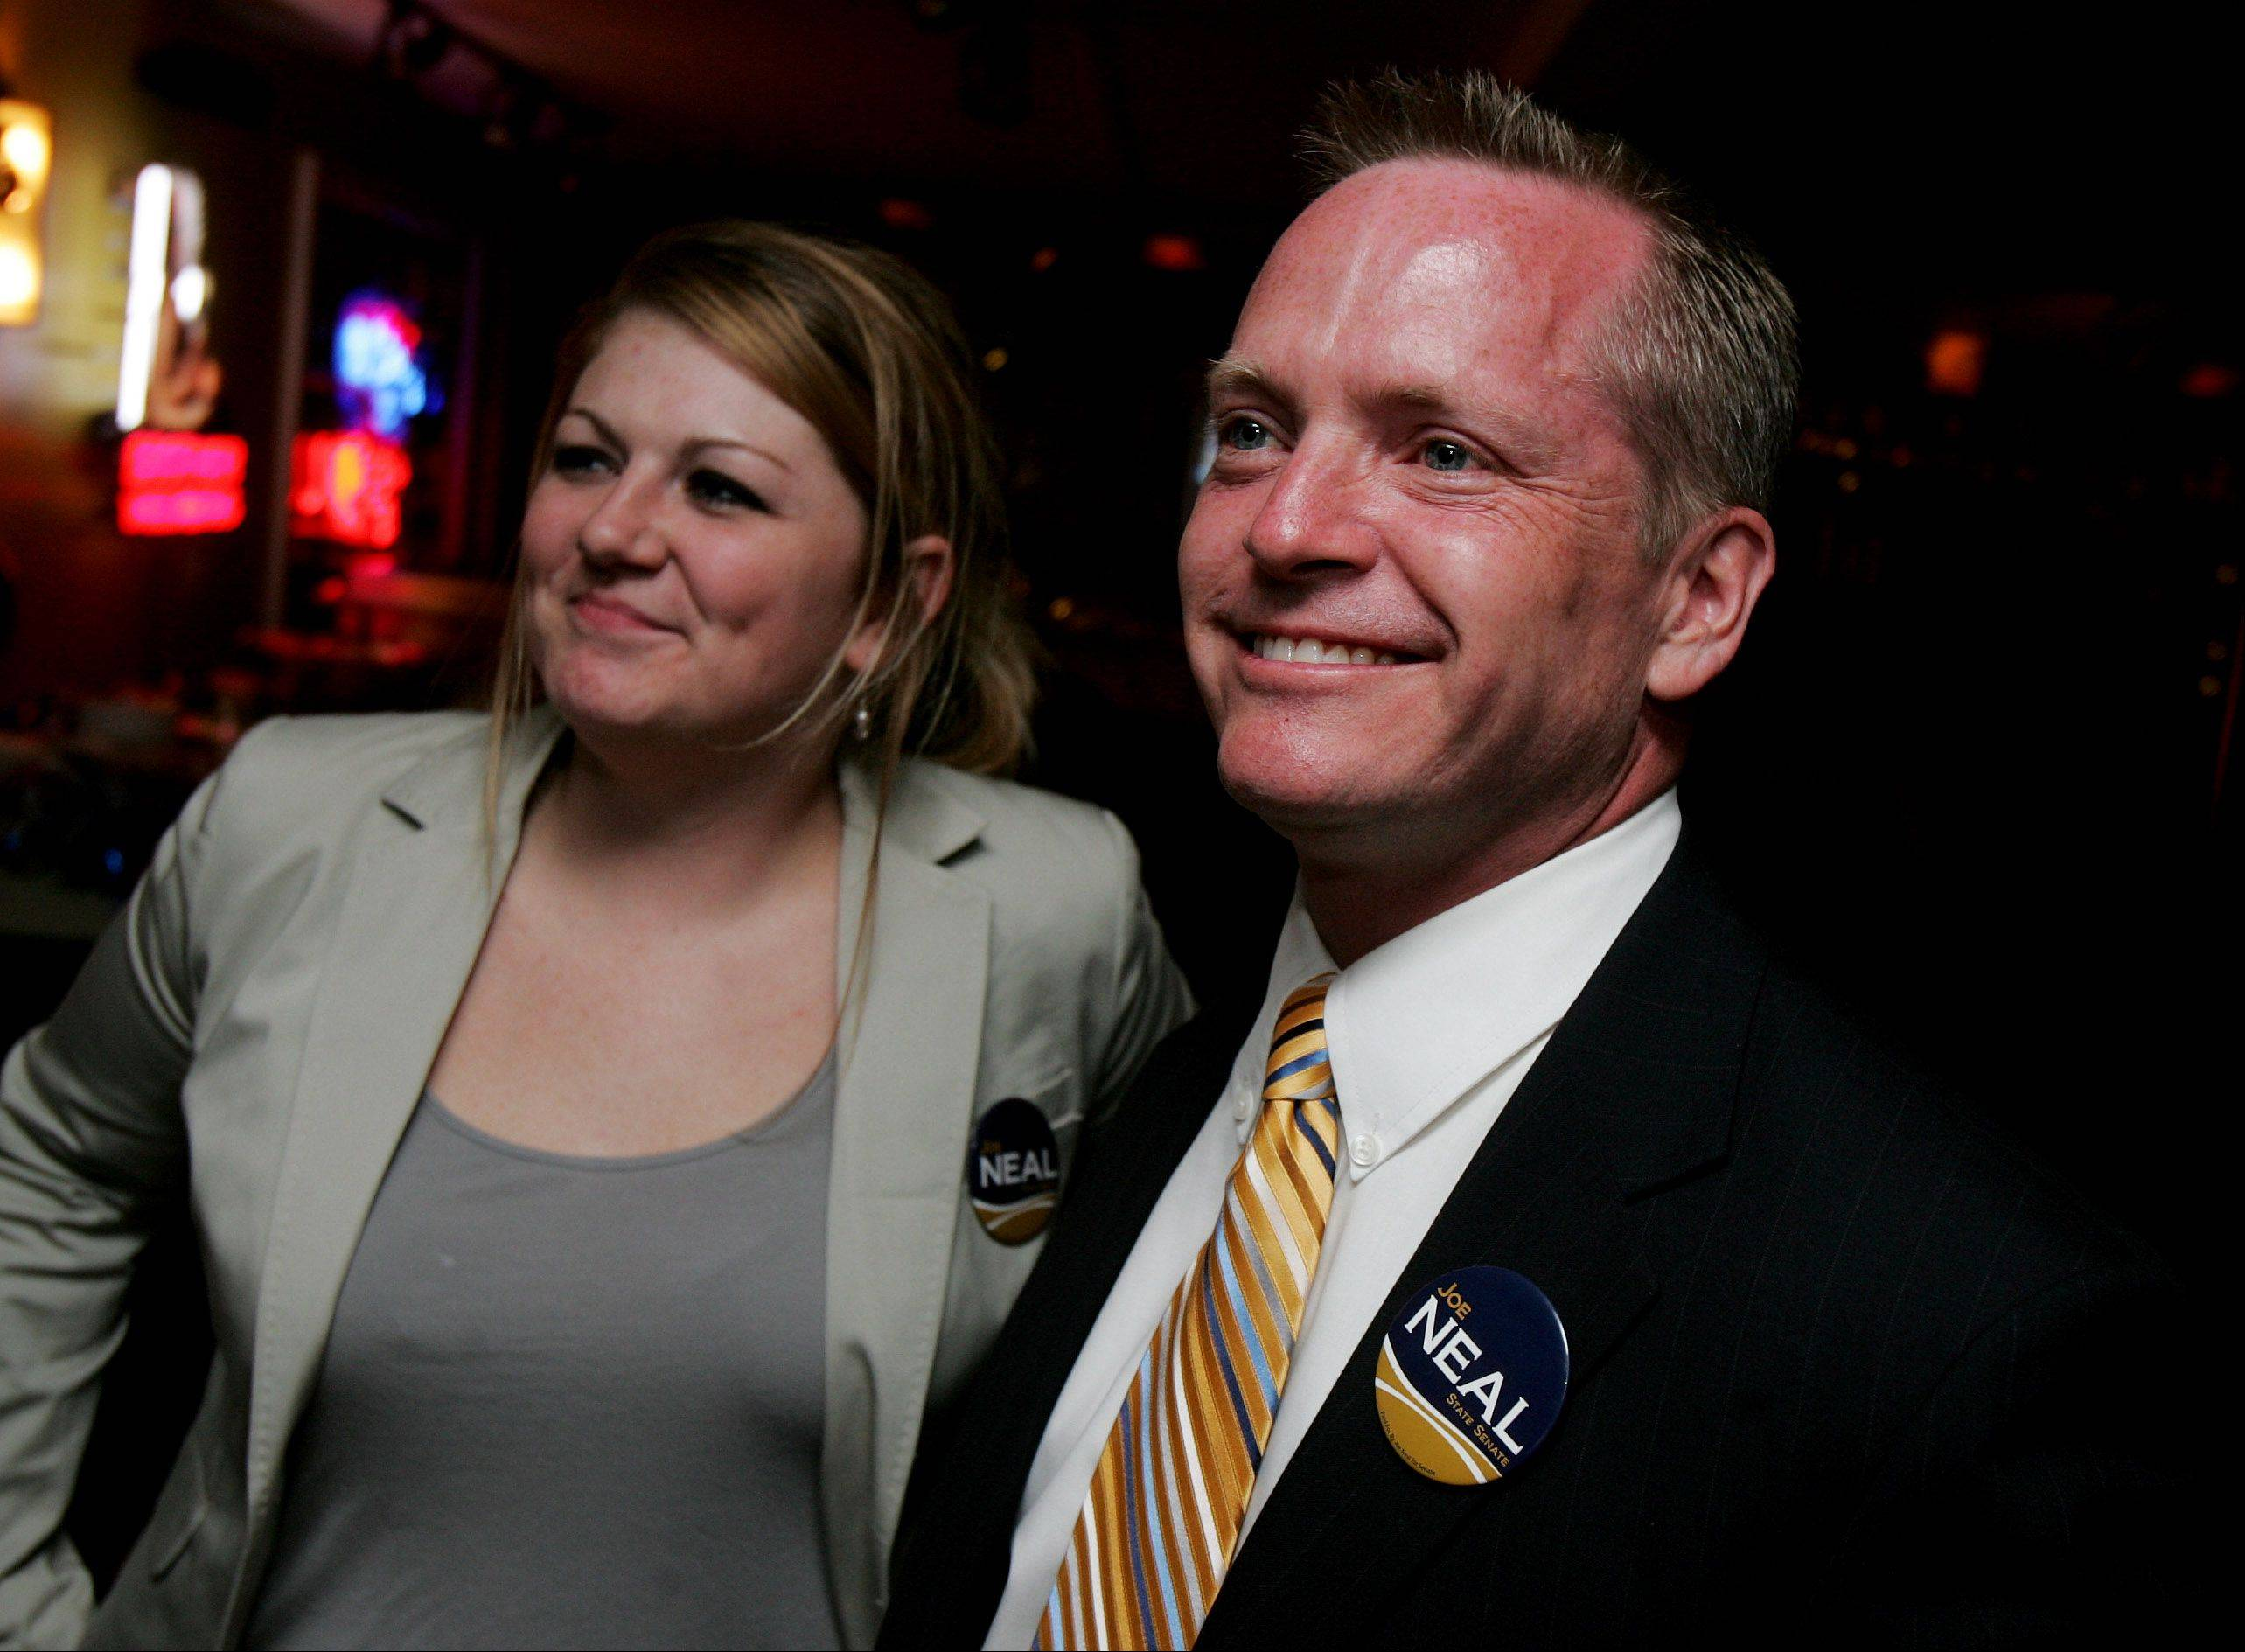 Republican Joe Neal and his campaign manager Lauren Fleming are happy Tuesday night as they watch his victory in the Republican primary in the 31st Senate District at Savanna House restaurant in Wadsworth. Neal, a Wadsworth resident, will face Democrat Melinda Bush of Grayslake in November.